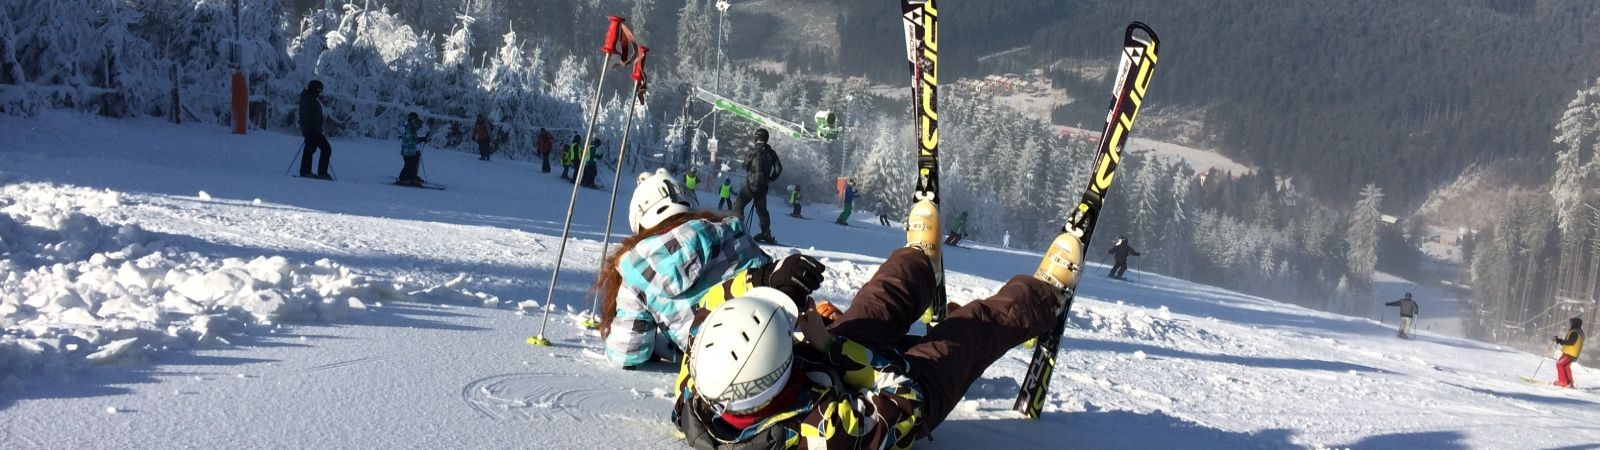 Sport/winter activity